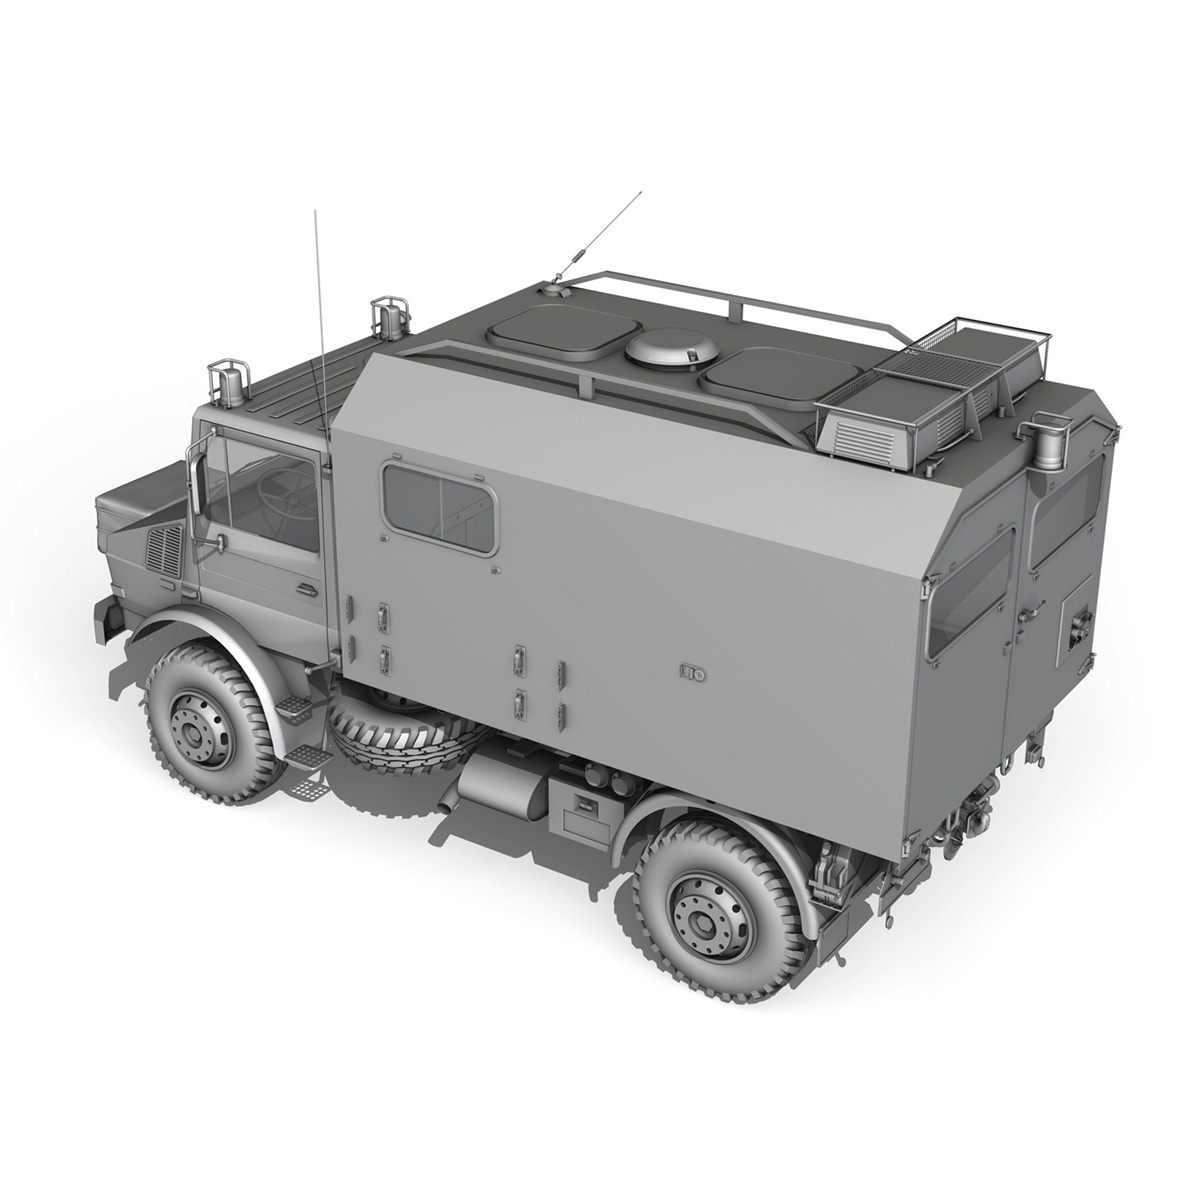 mercedes benz unimog u1300l ambulance 3d model 3ds fbx c4d lwo obj 189537